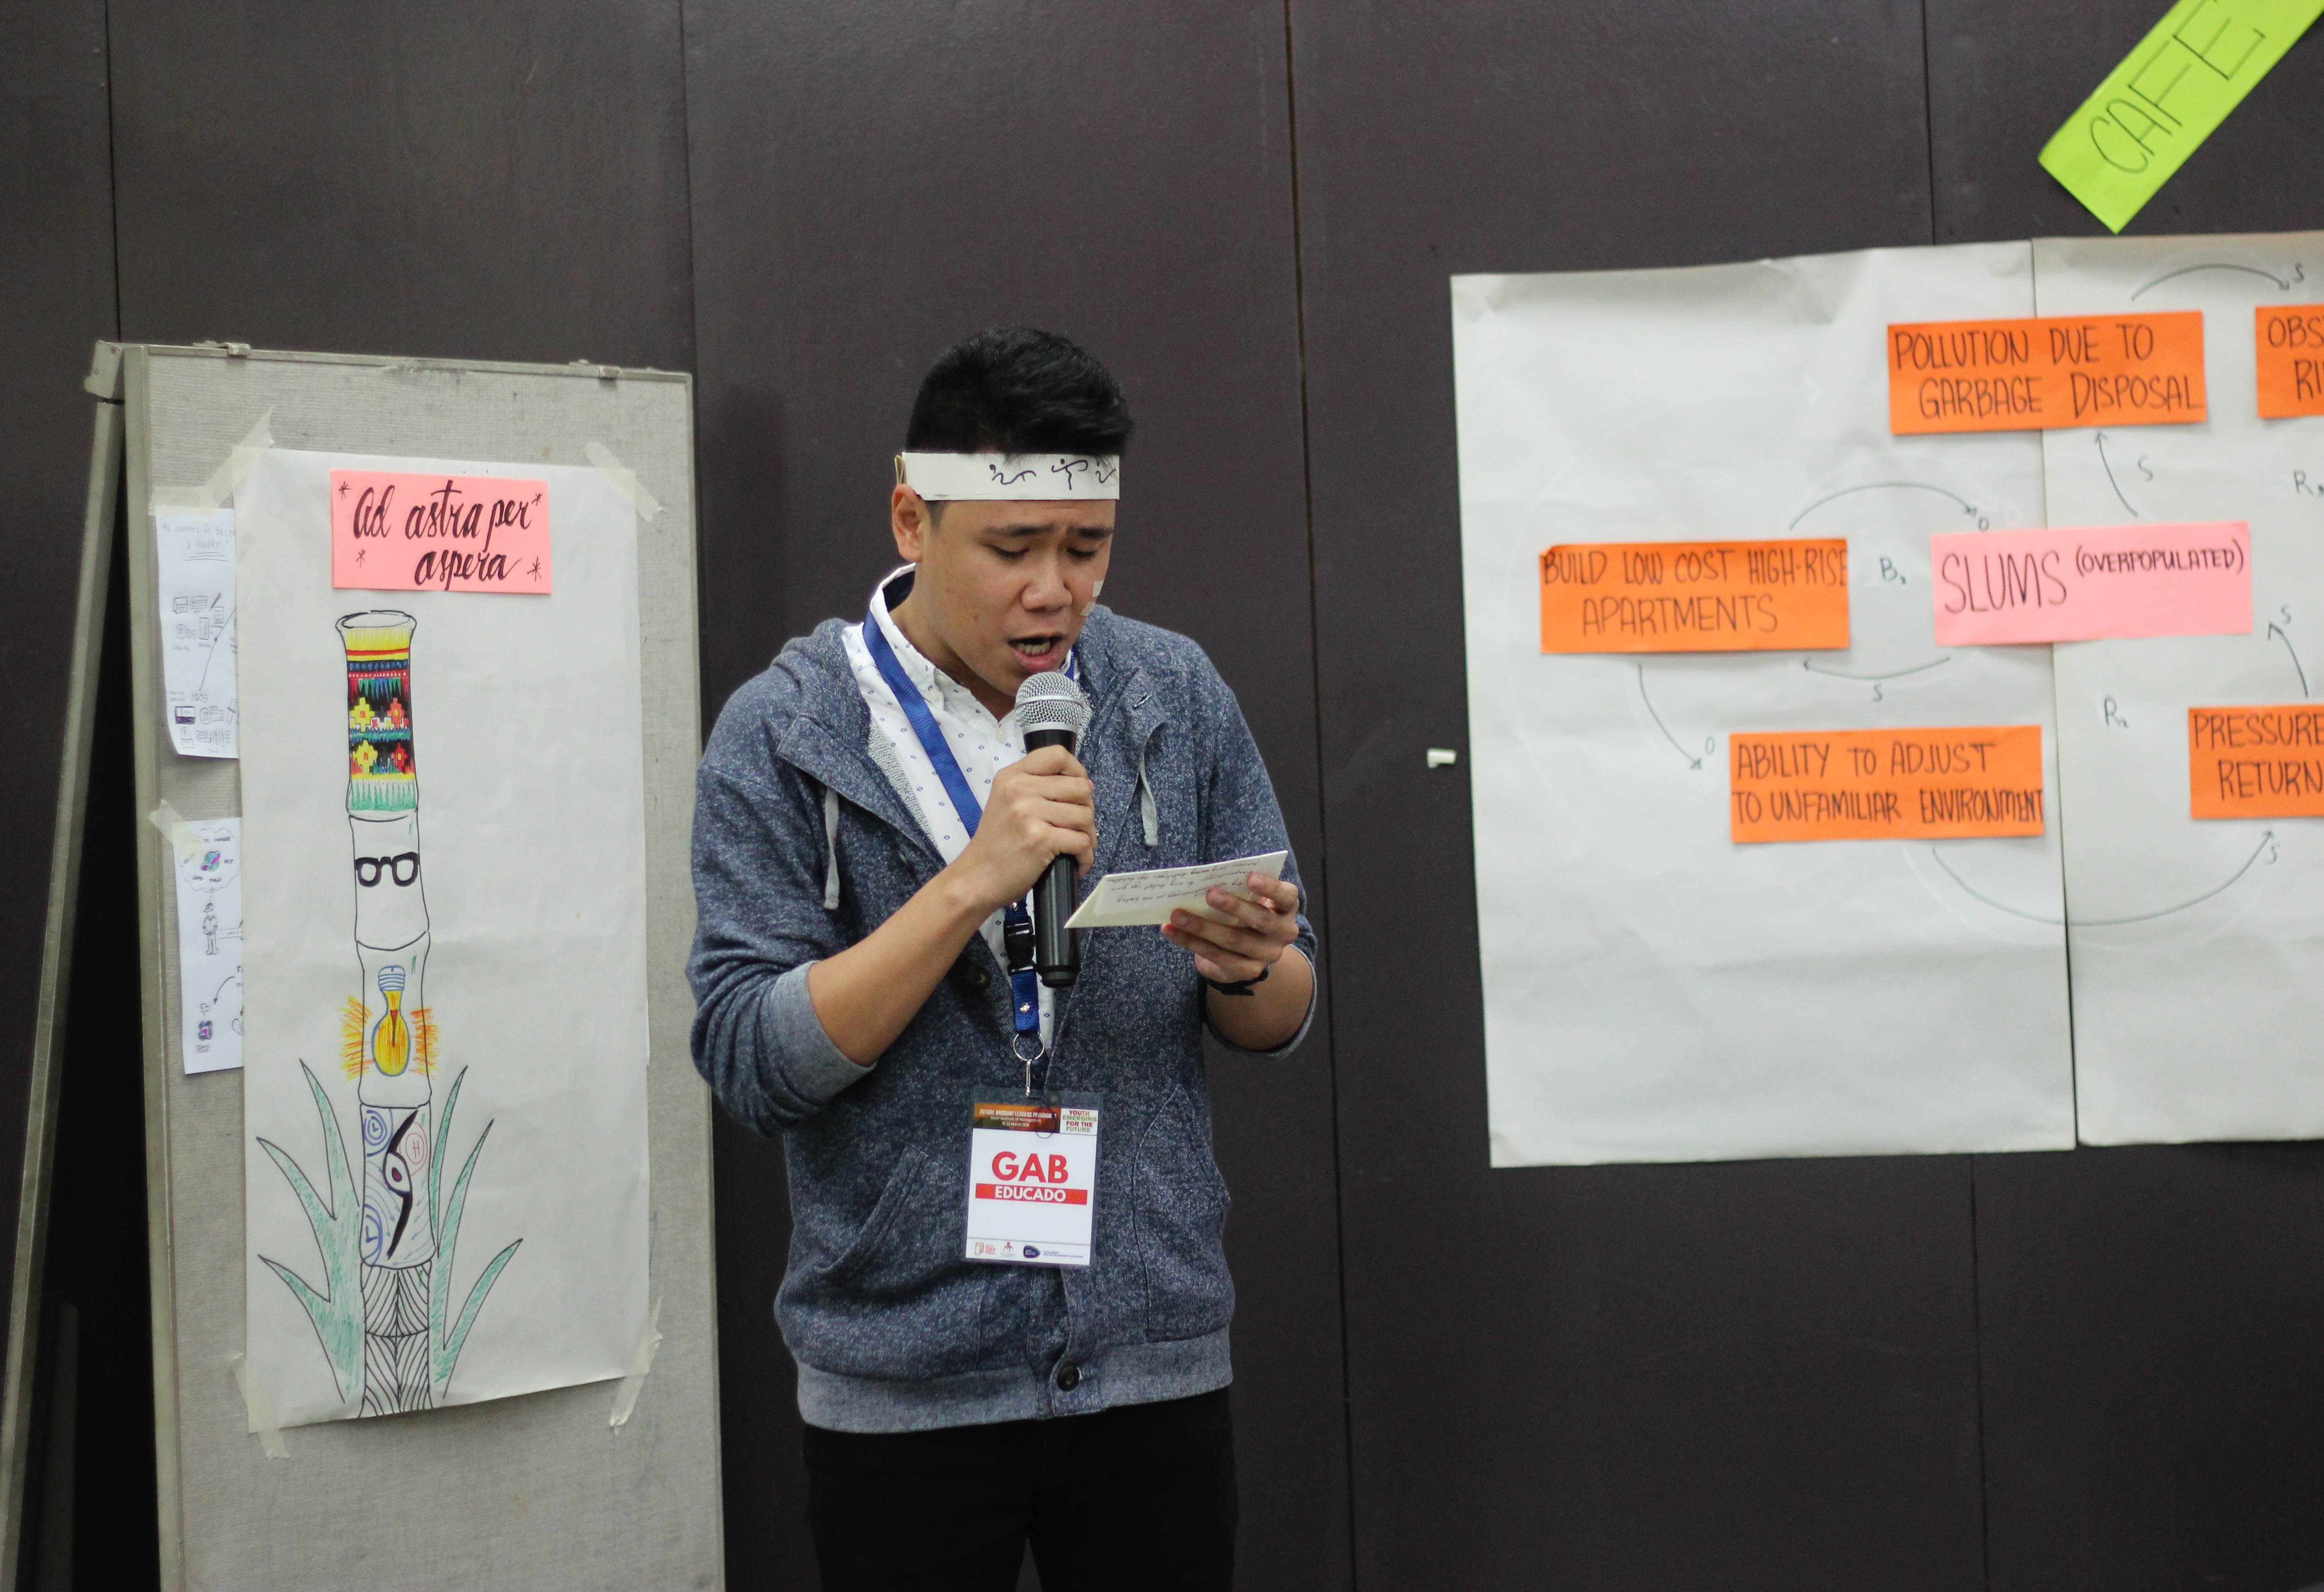 Gab Educado, a fellow, presenting his group's outputs for a collaborative activity.